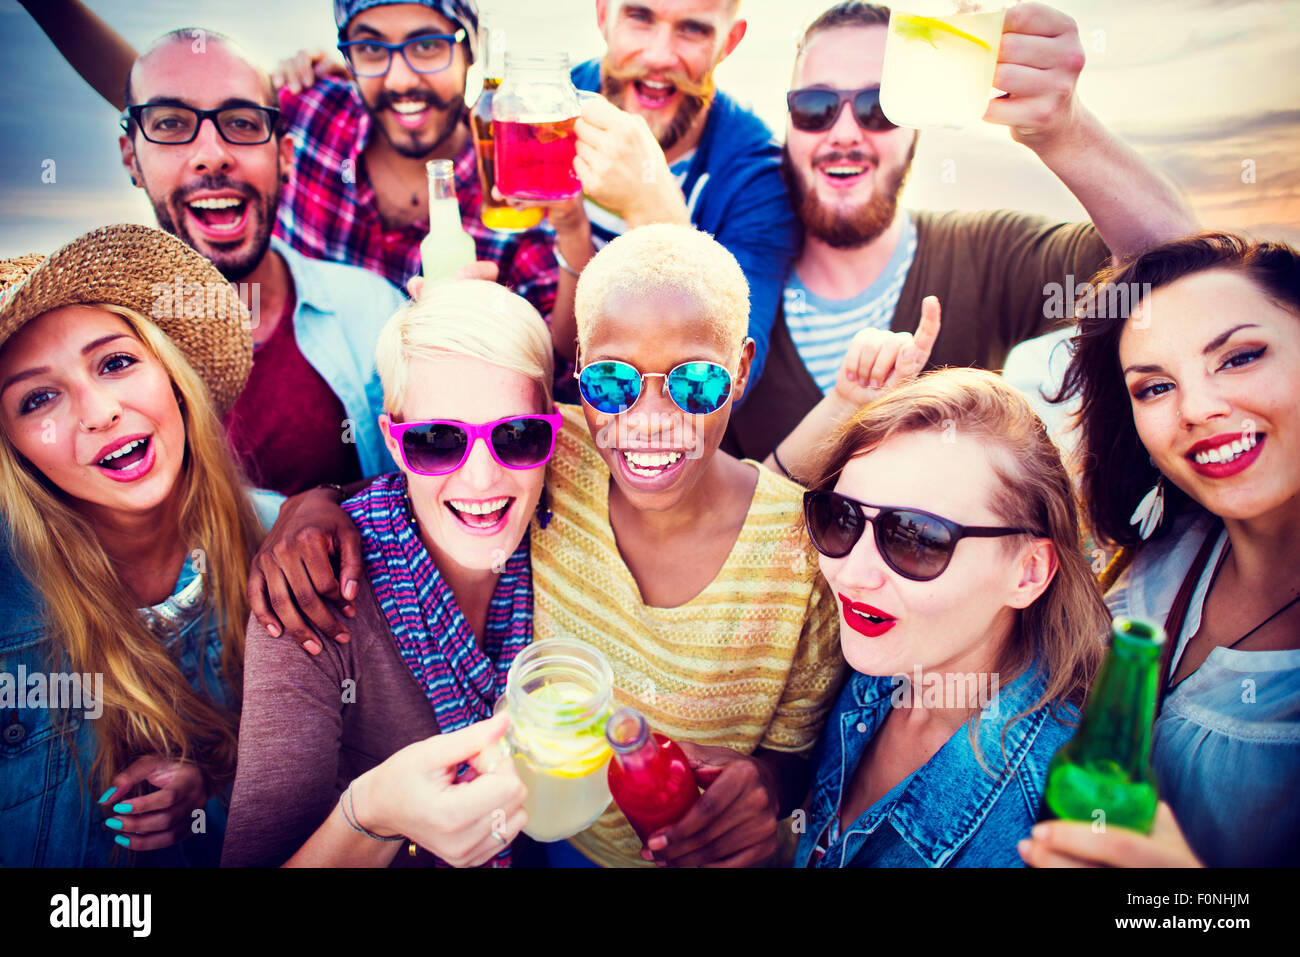 Celebration Cheerful Enjoying Party Leisure Happiness Concept - Stock Image